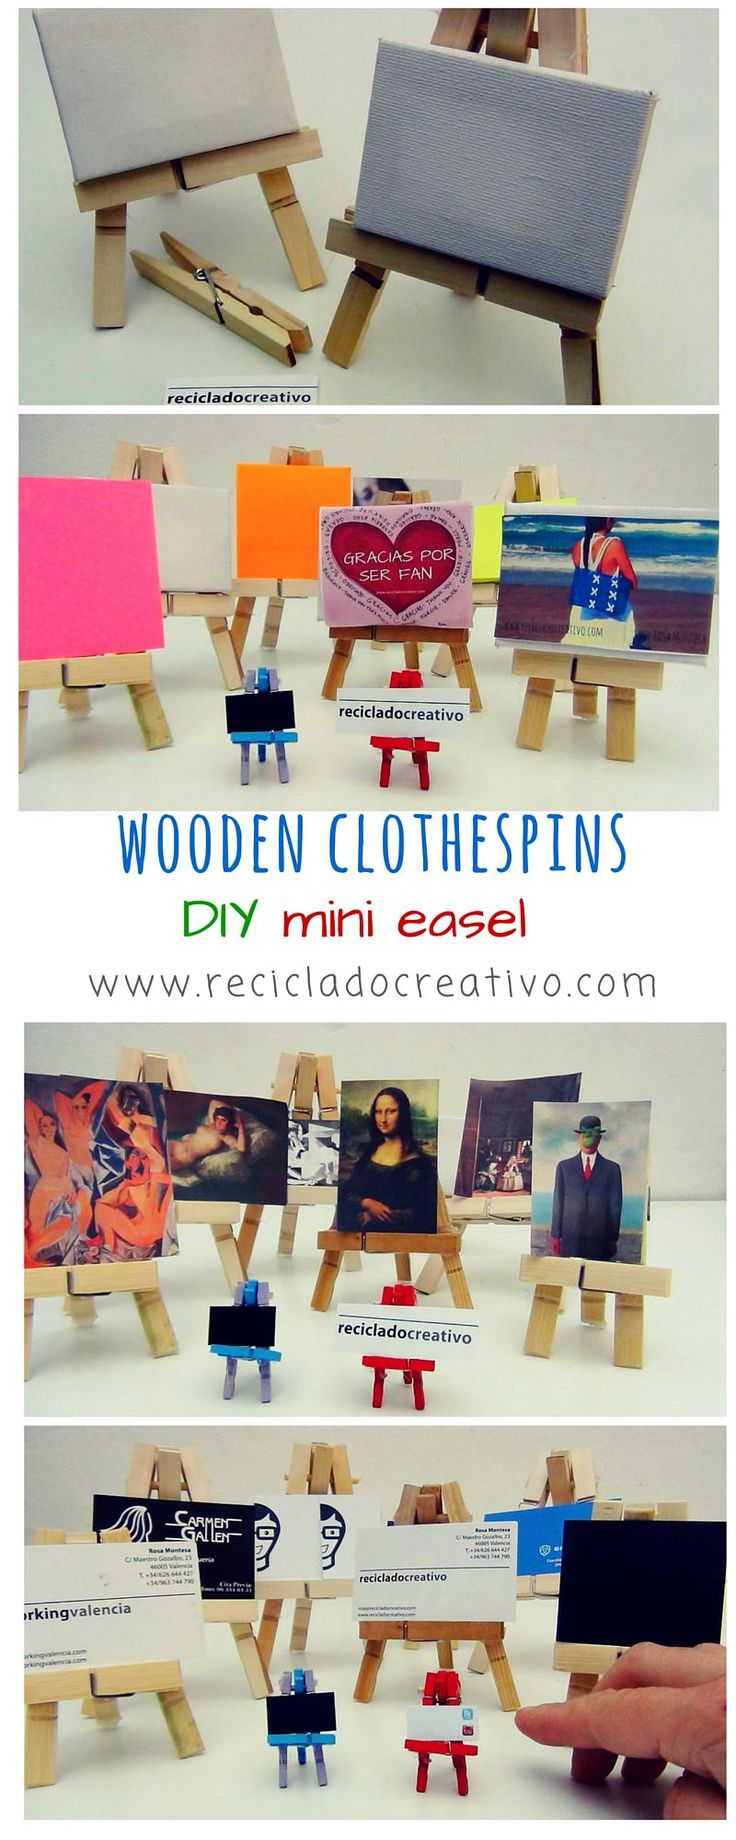 It's easy and very cheap to make a mini easel from clothespins. You just need 6 clothespins, 1 stick and …